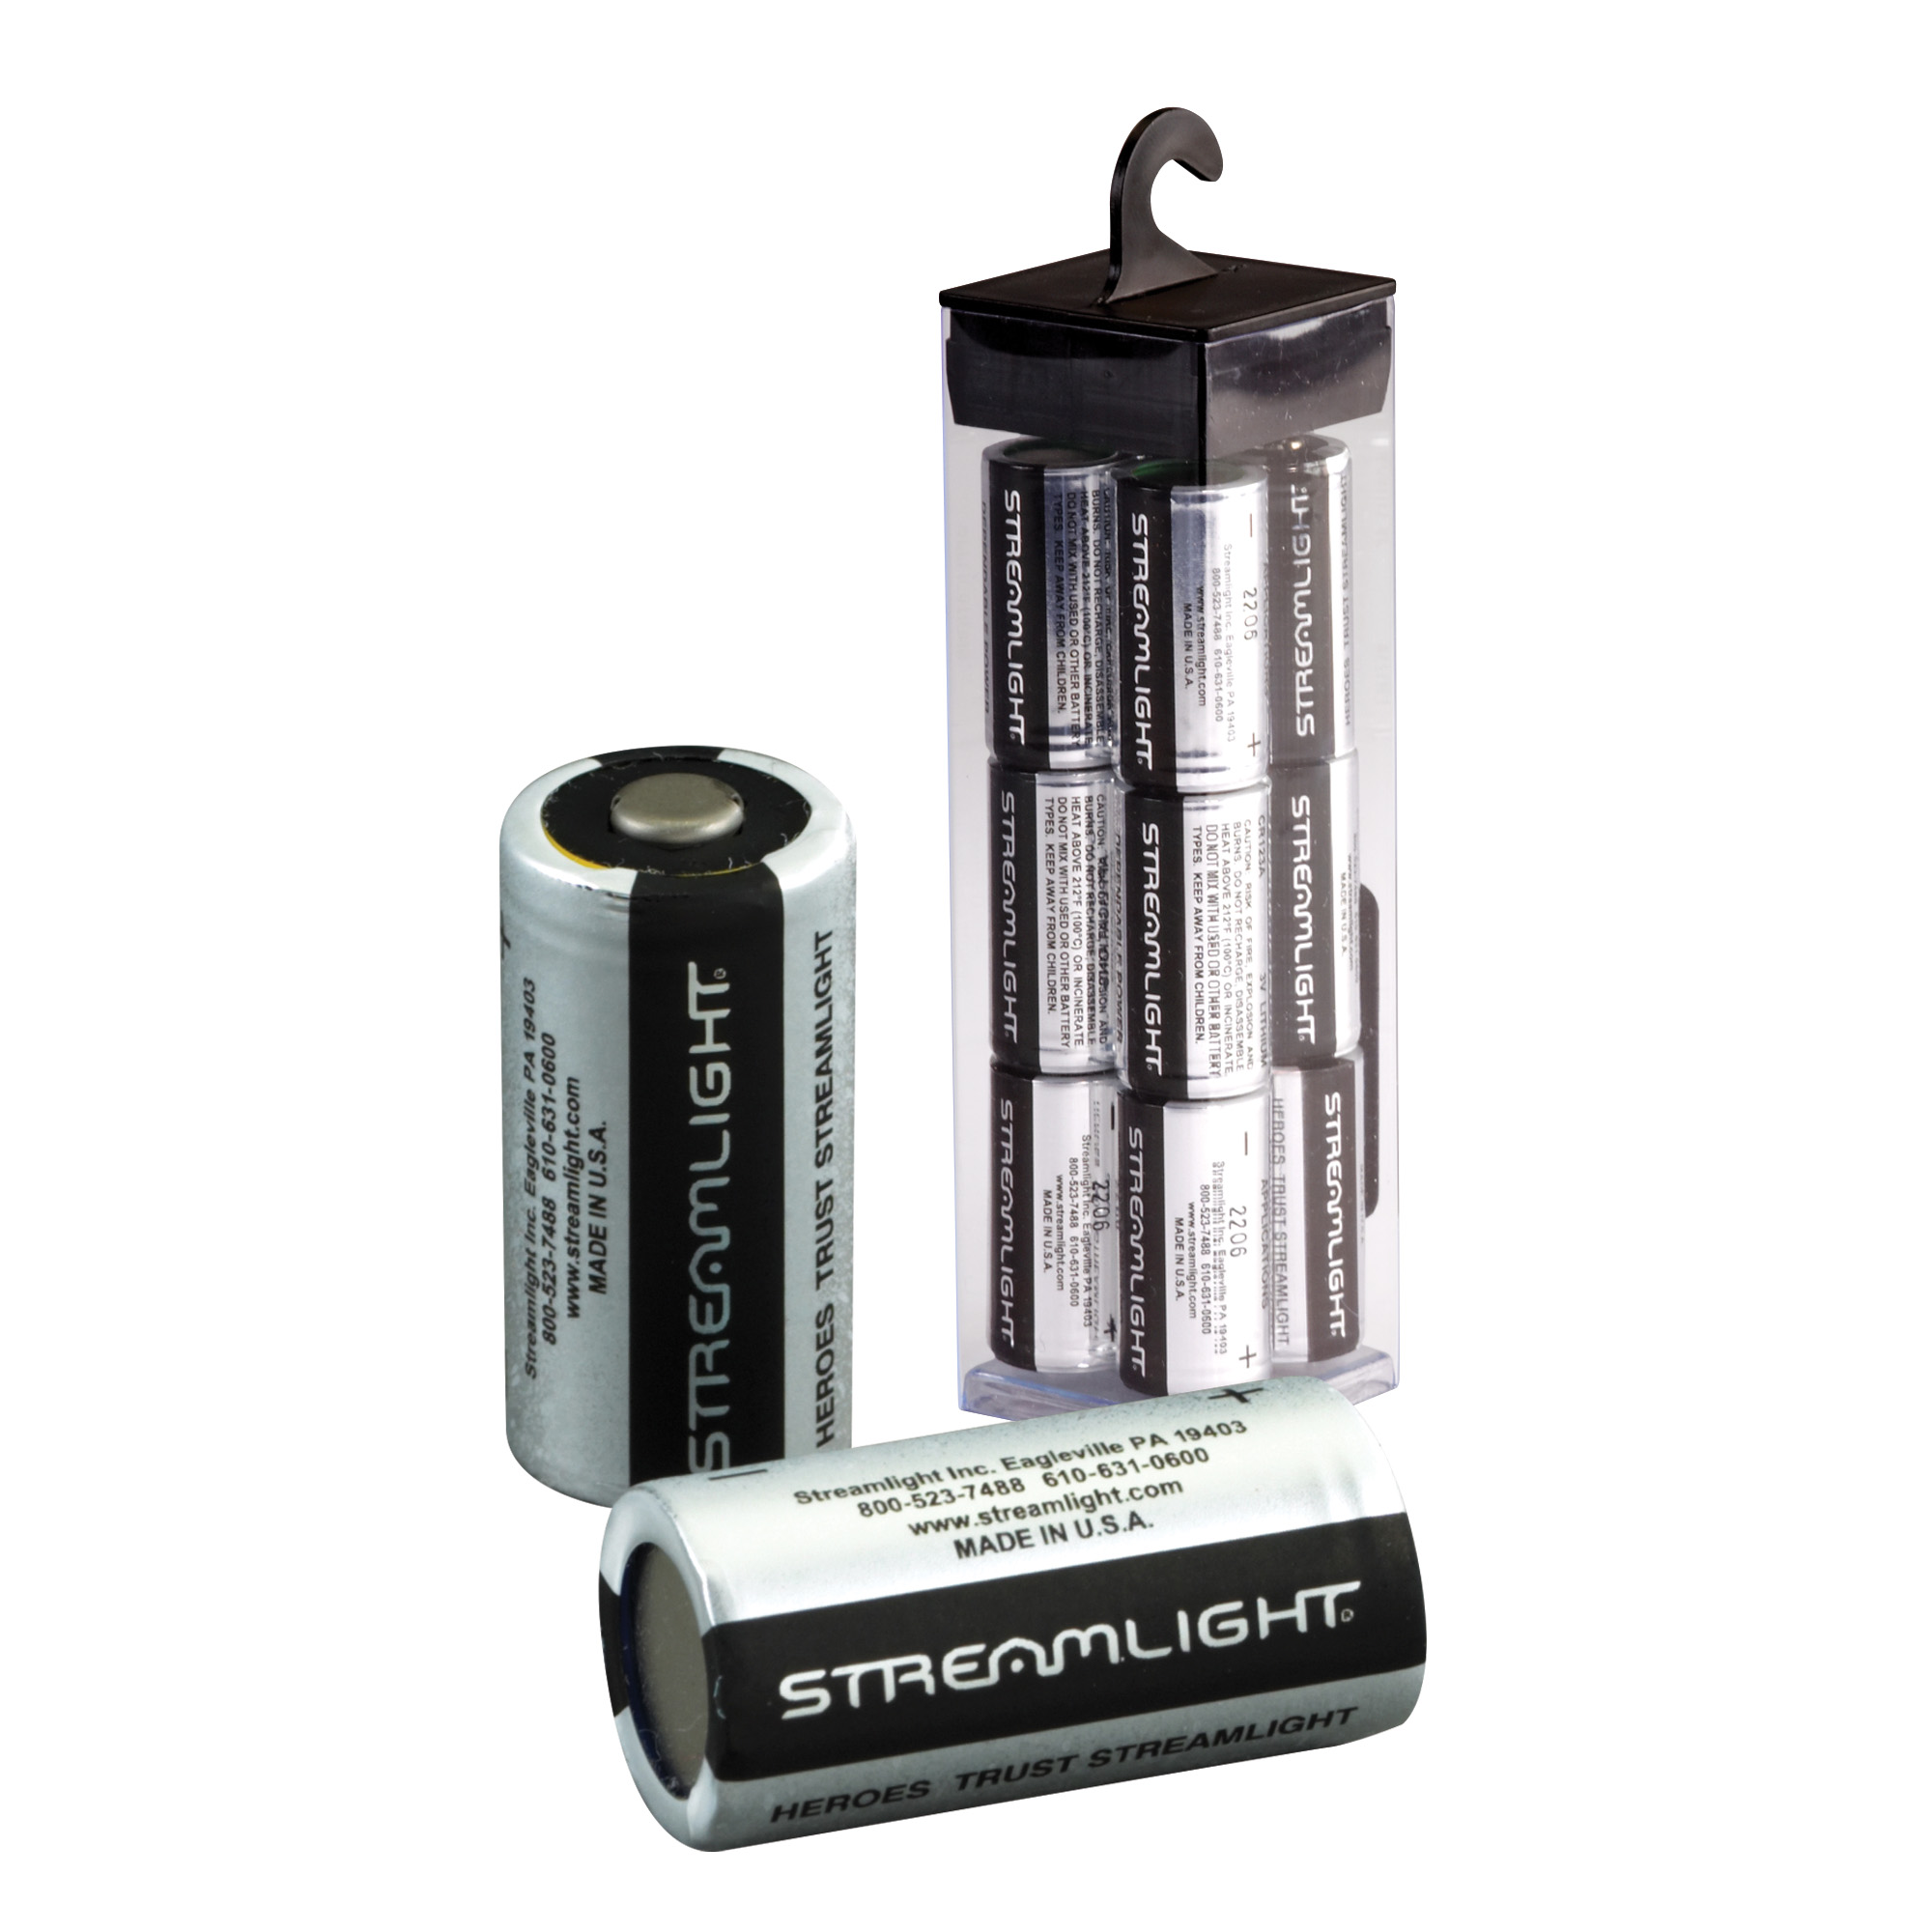 Streamlight OEM 3V lithium battery.